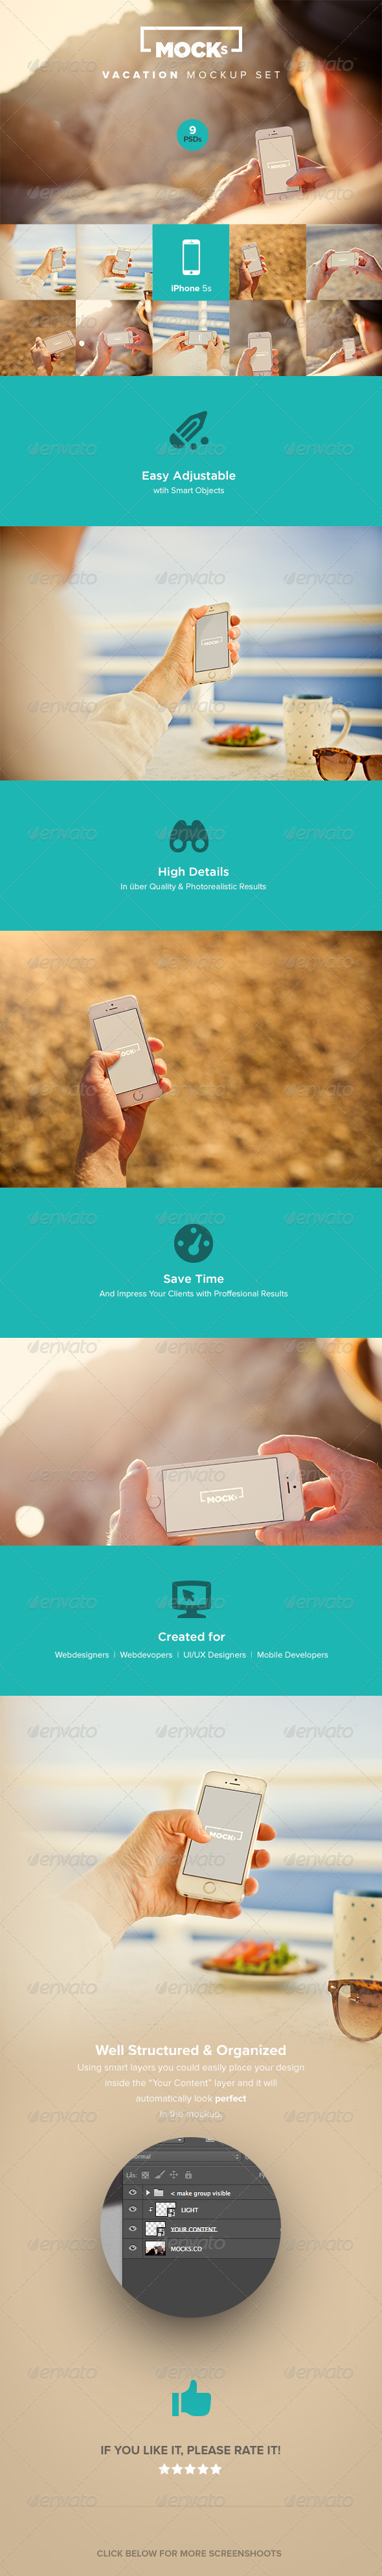 GraphicRiver Photorealistic iPhone Mockup Templates 8118721